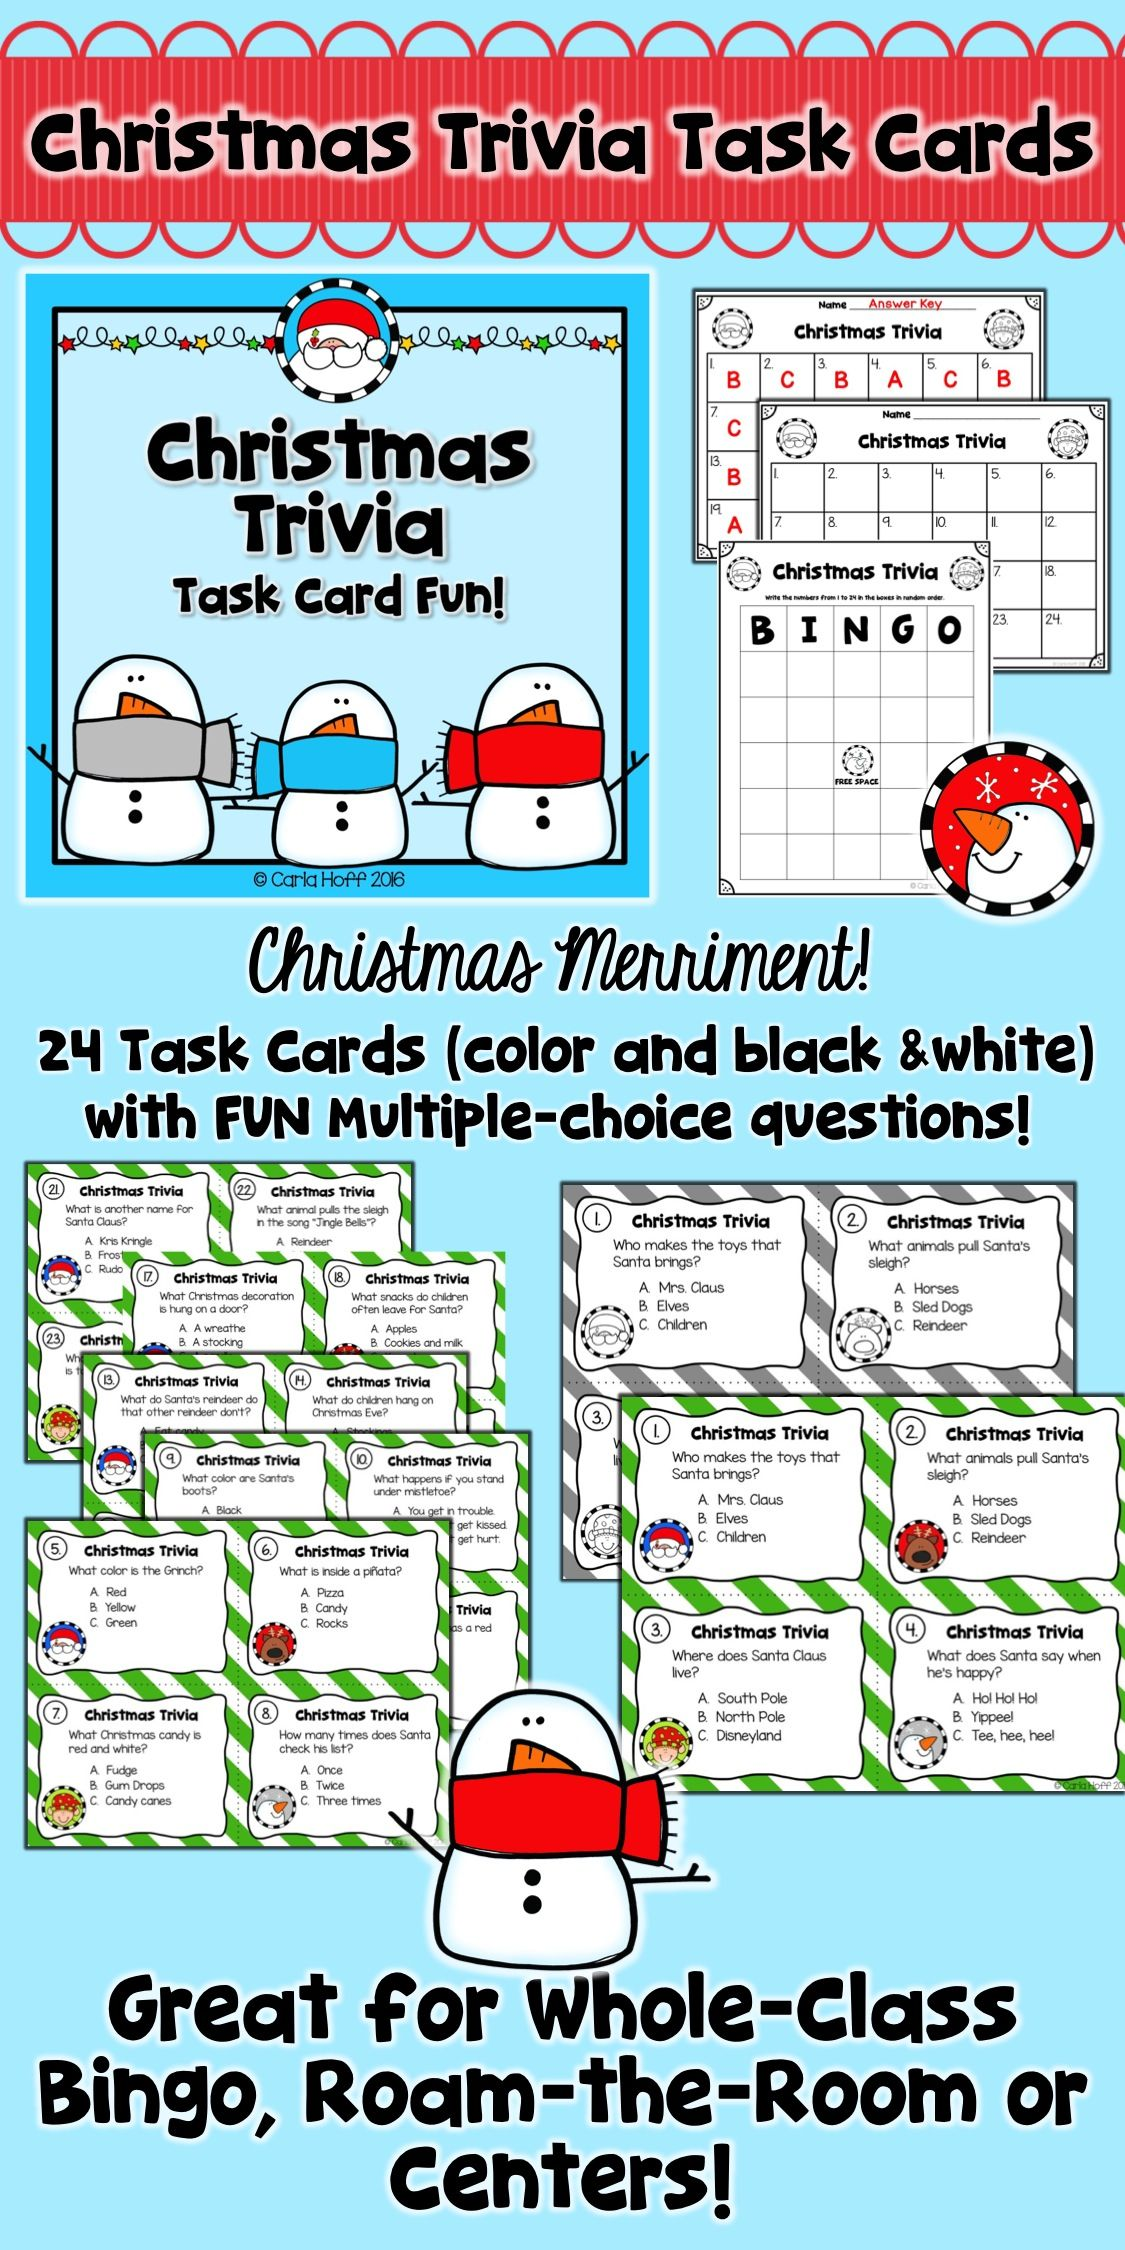 Christmas Trivia Task Card Fun